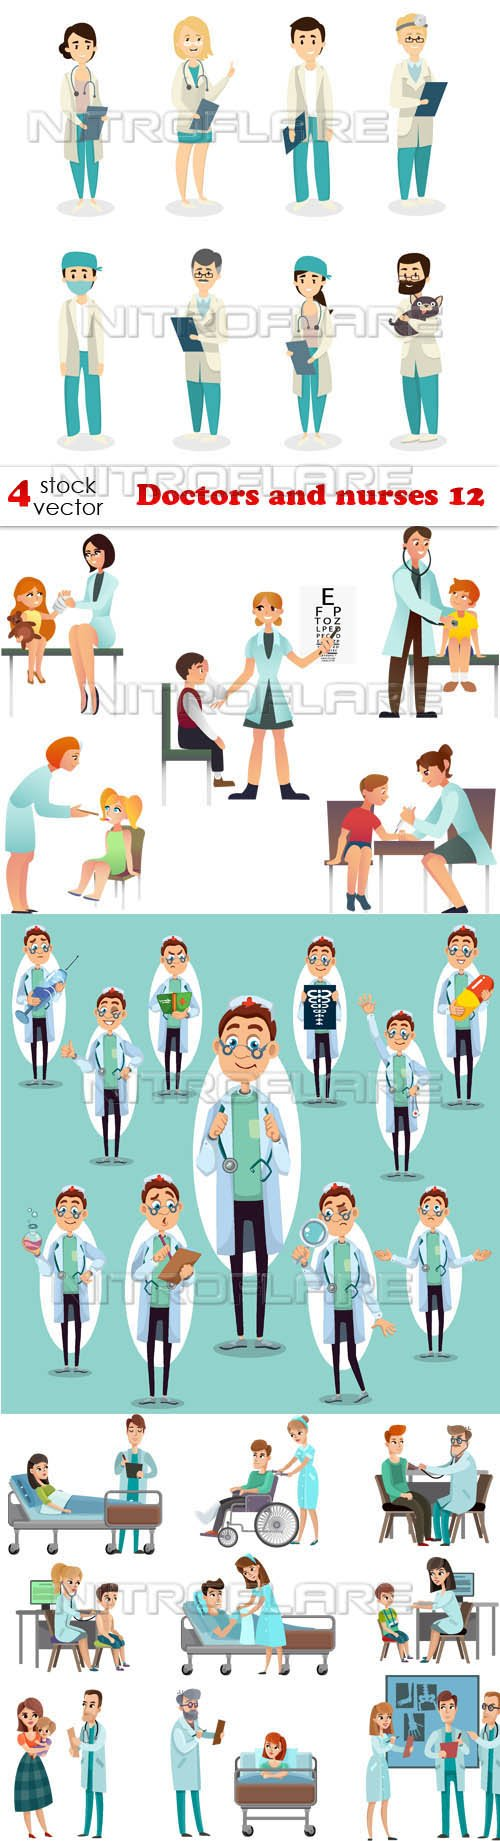 Vectors - Doctors and nurses 12